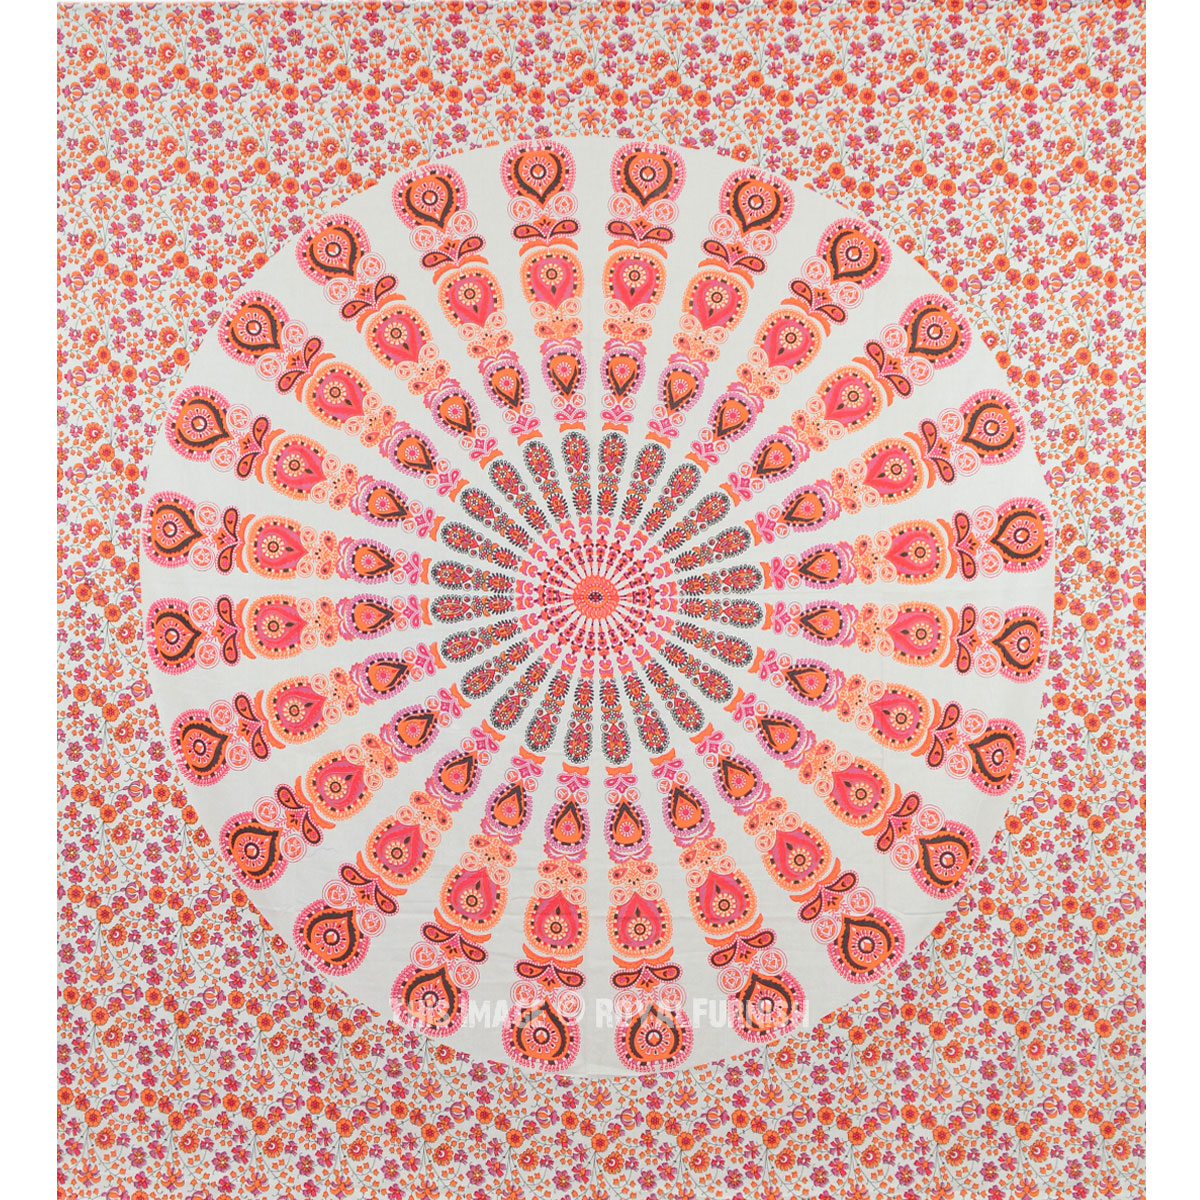 Boho Wall Hanging & orange mixed mandala tapestry, hippie boho wall hanging